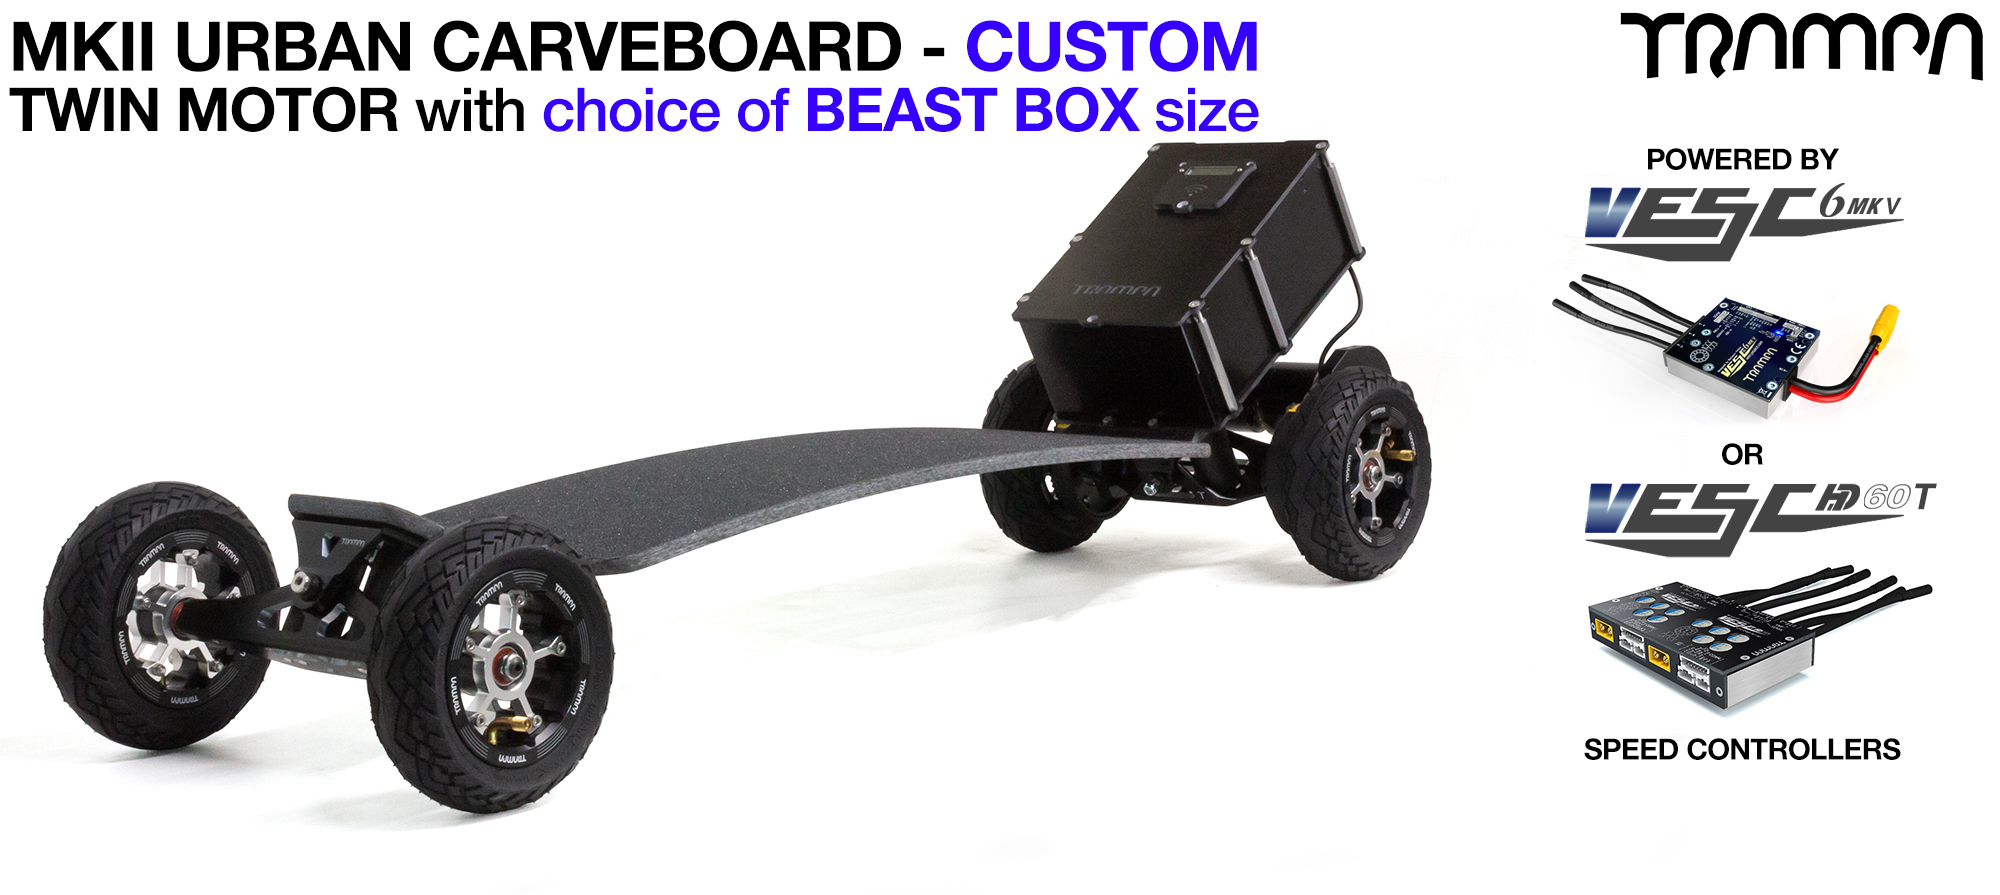 MkII TWIN Motor TRAMPA Electric URBAN Carveboard with 12A BEAST Box, VESC MKIII & OFF-SET MEGASTAR Wheels as standard